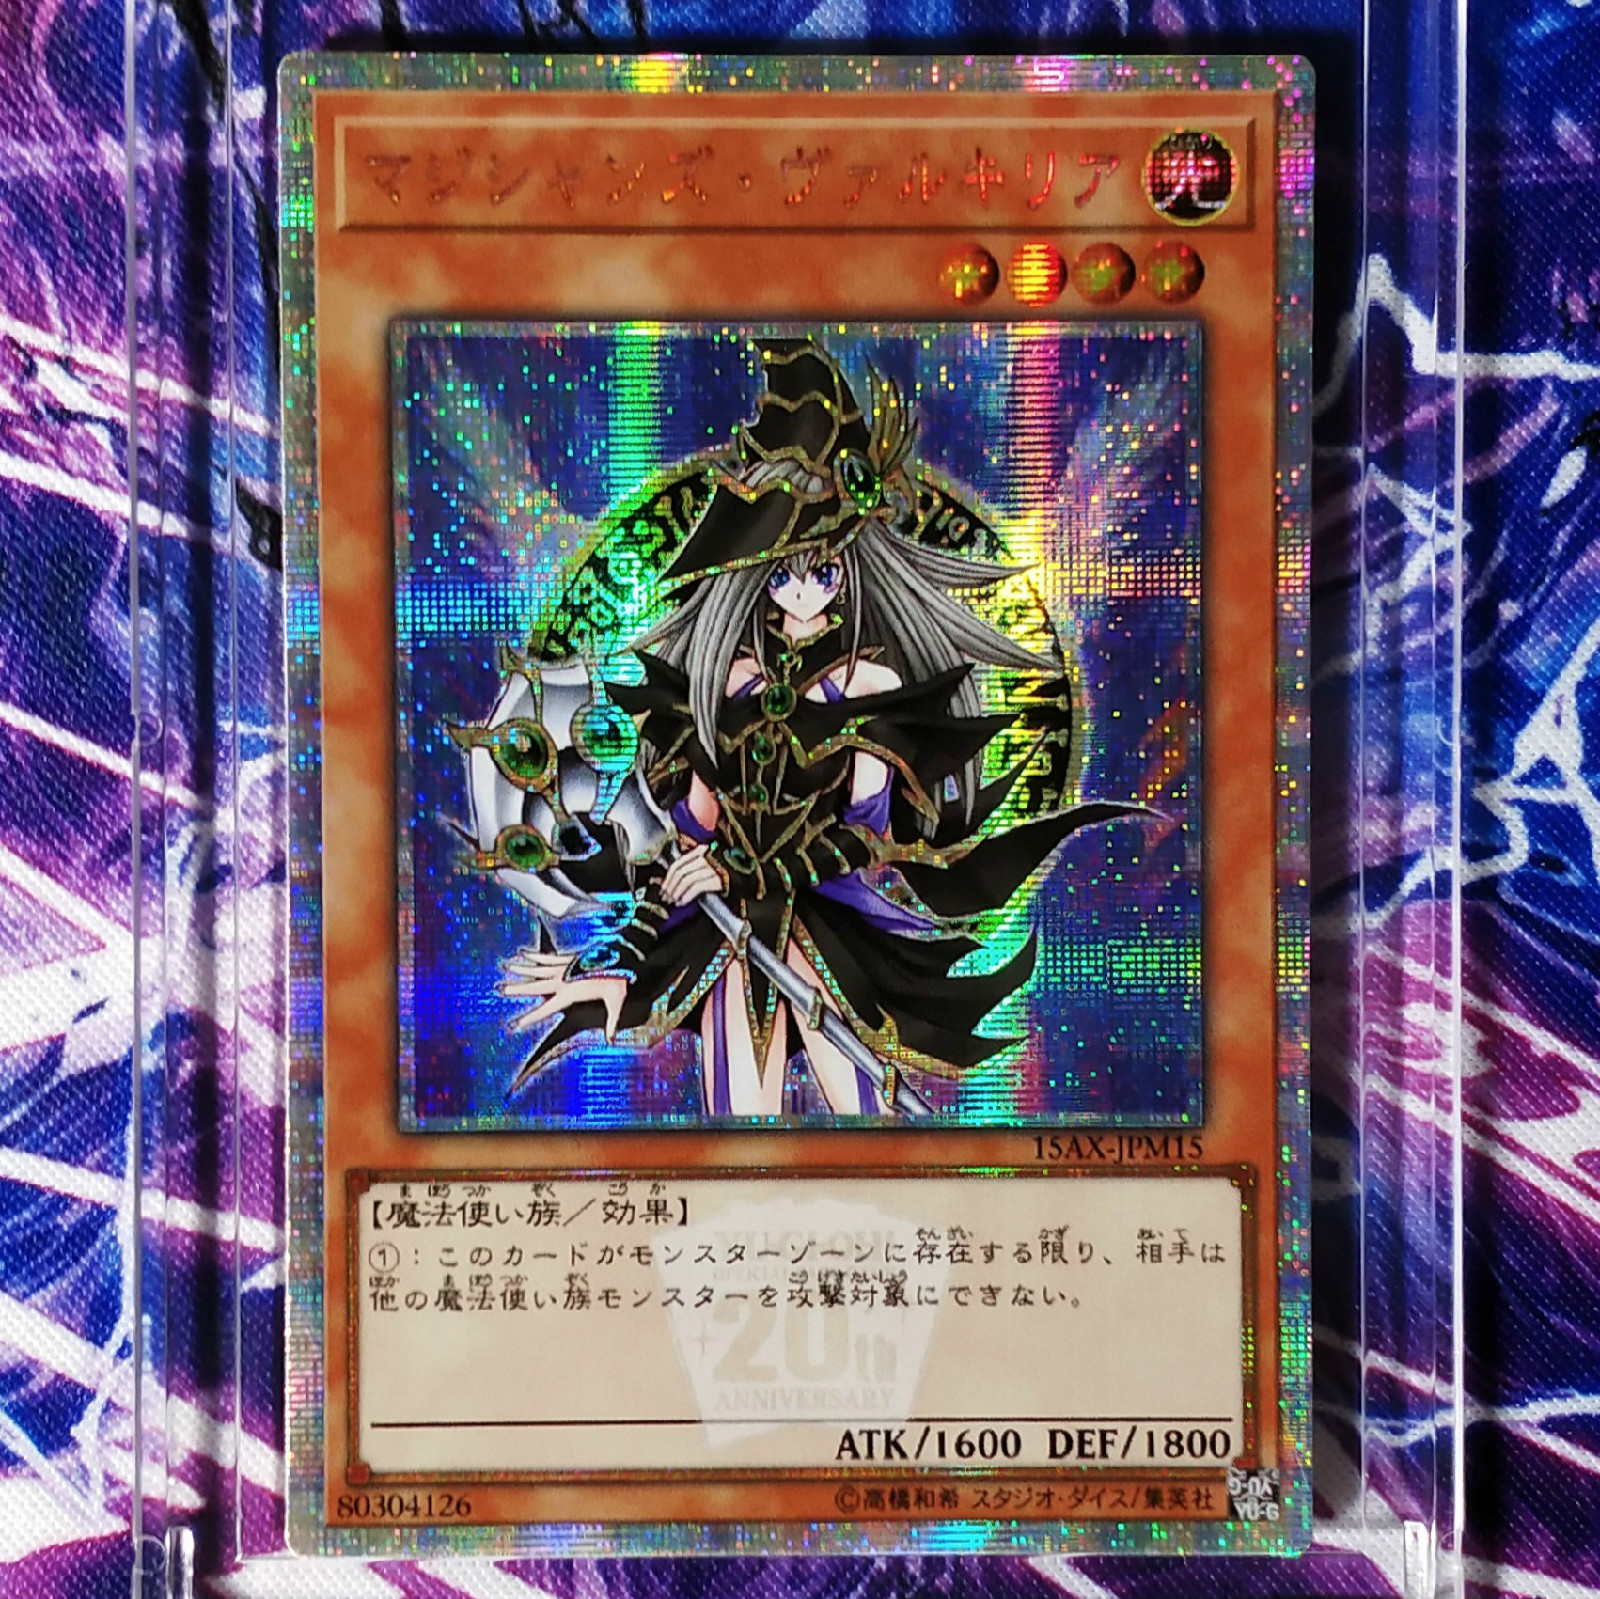 Yu Gi Oh Magician's Valkyria DIY Colorful Toys Hobbies Hobby Collectibles Game Collection Anime Cards 1